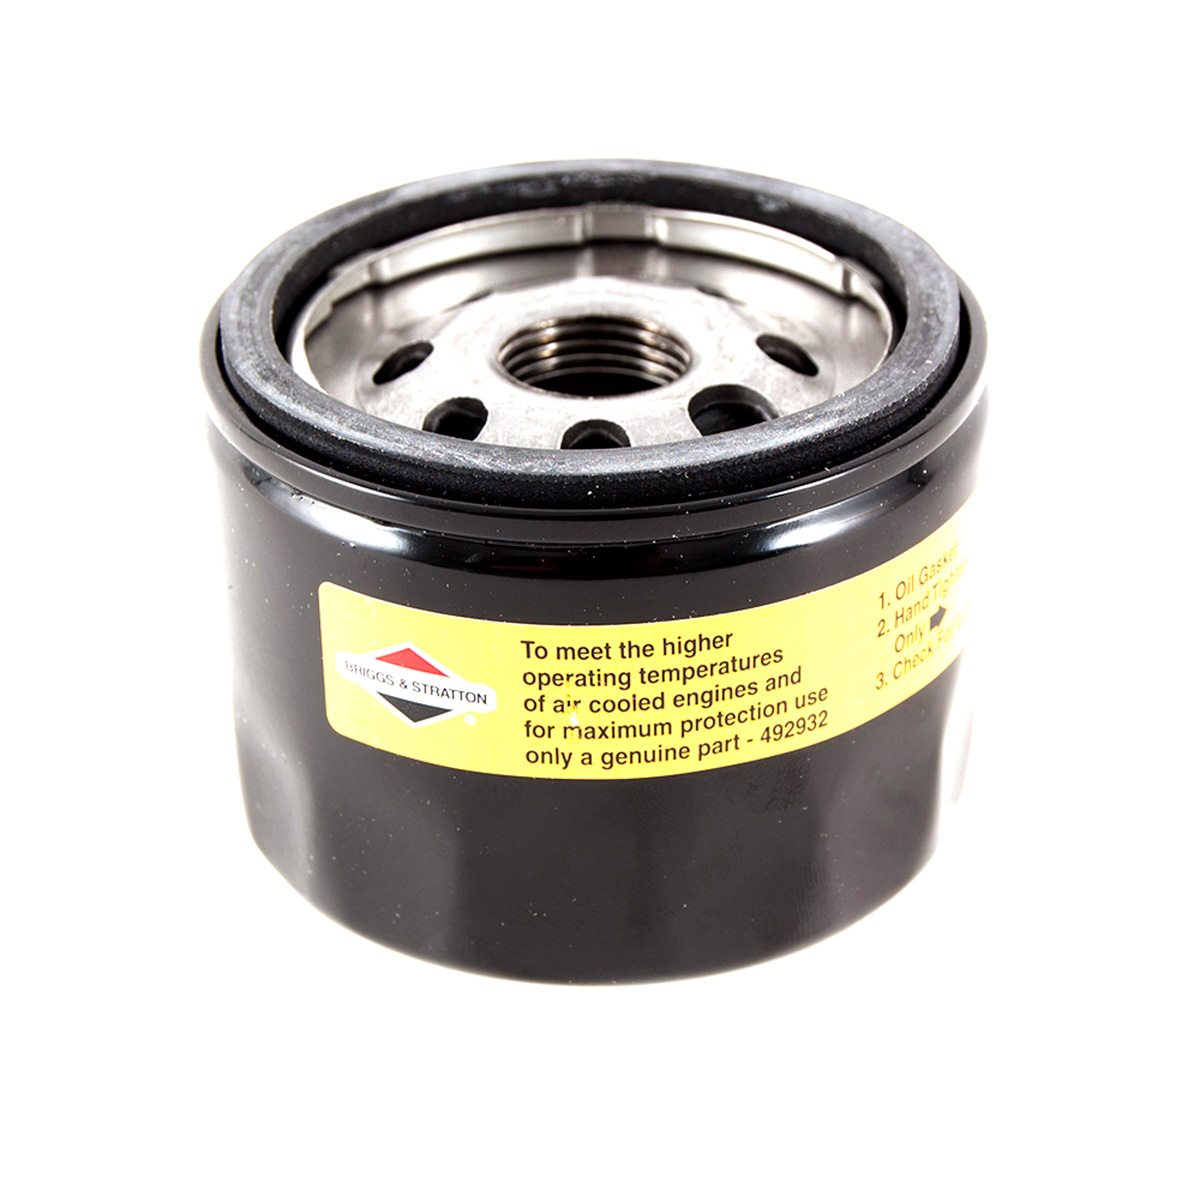 hydro oil filter bs-492932s